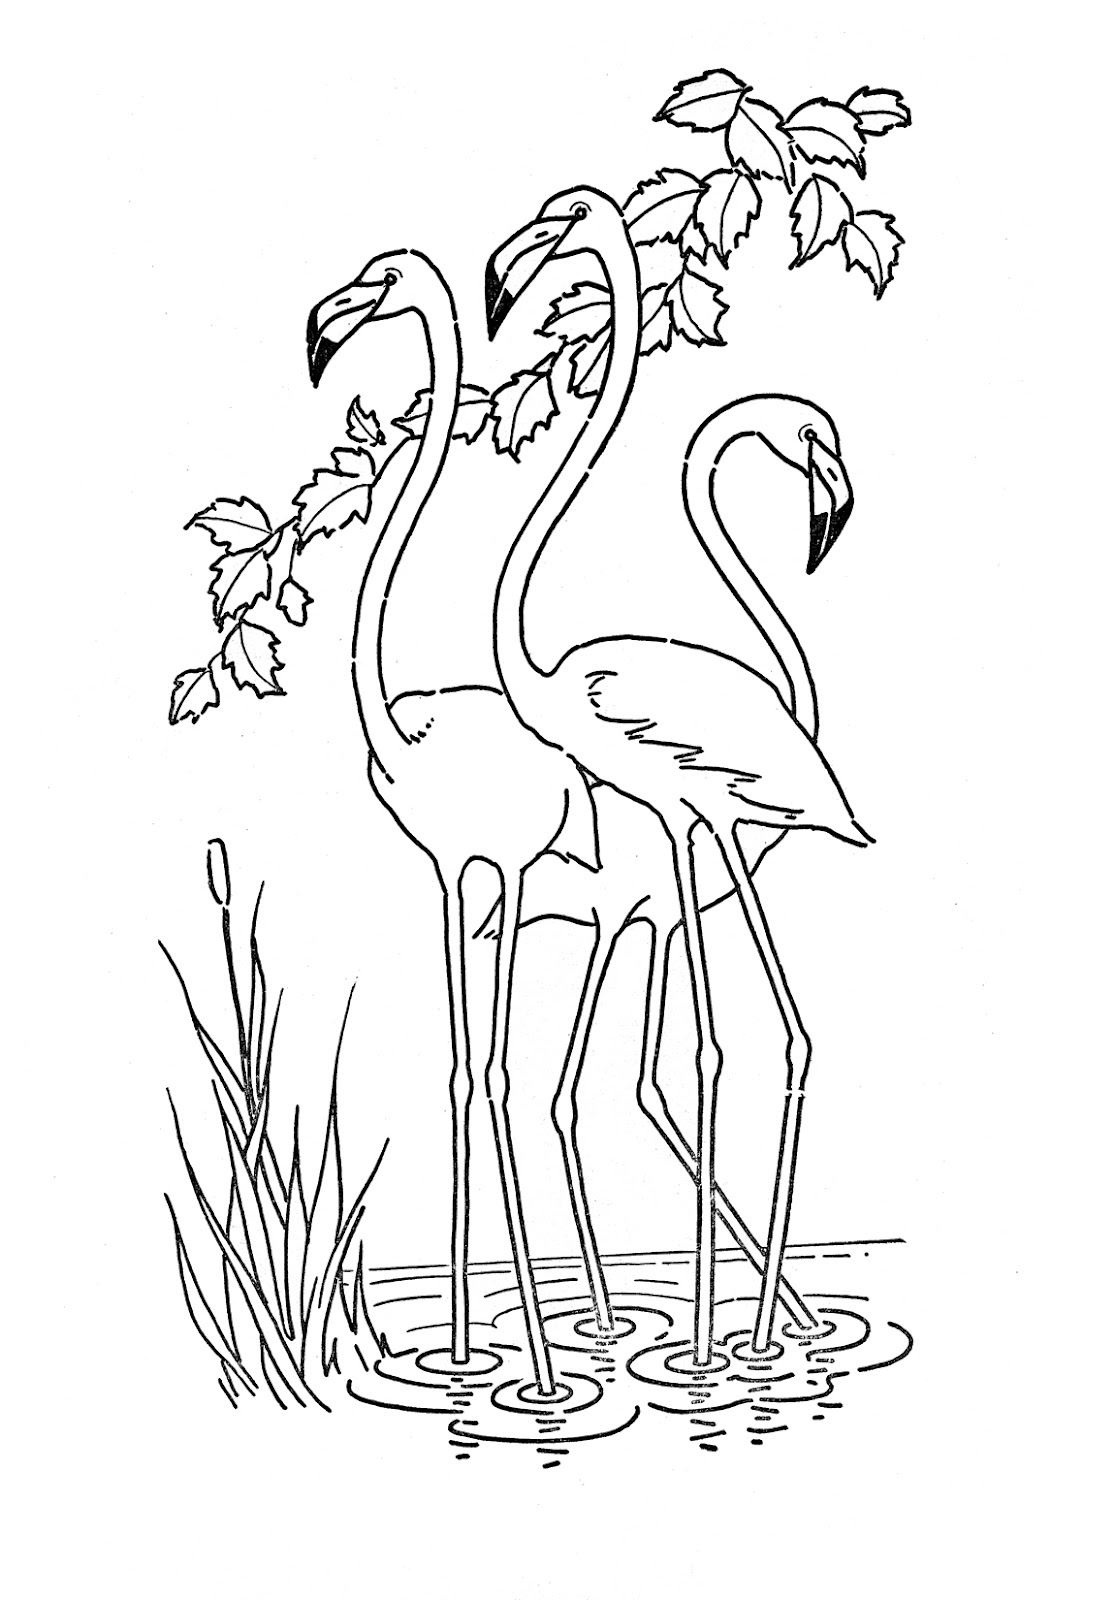 graphical coloring pages - photo#1